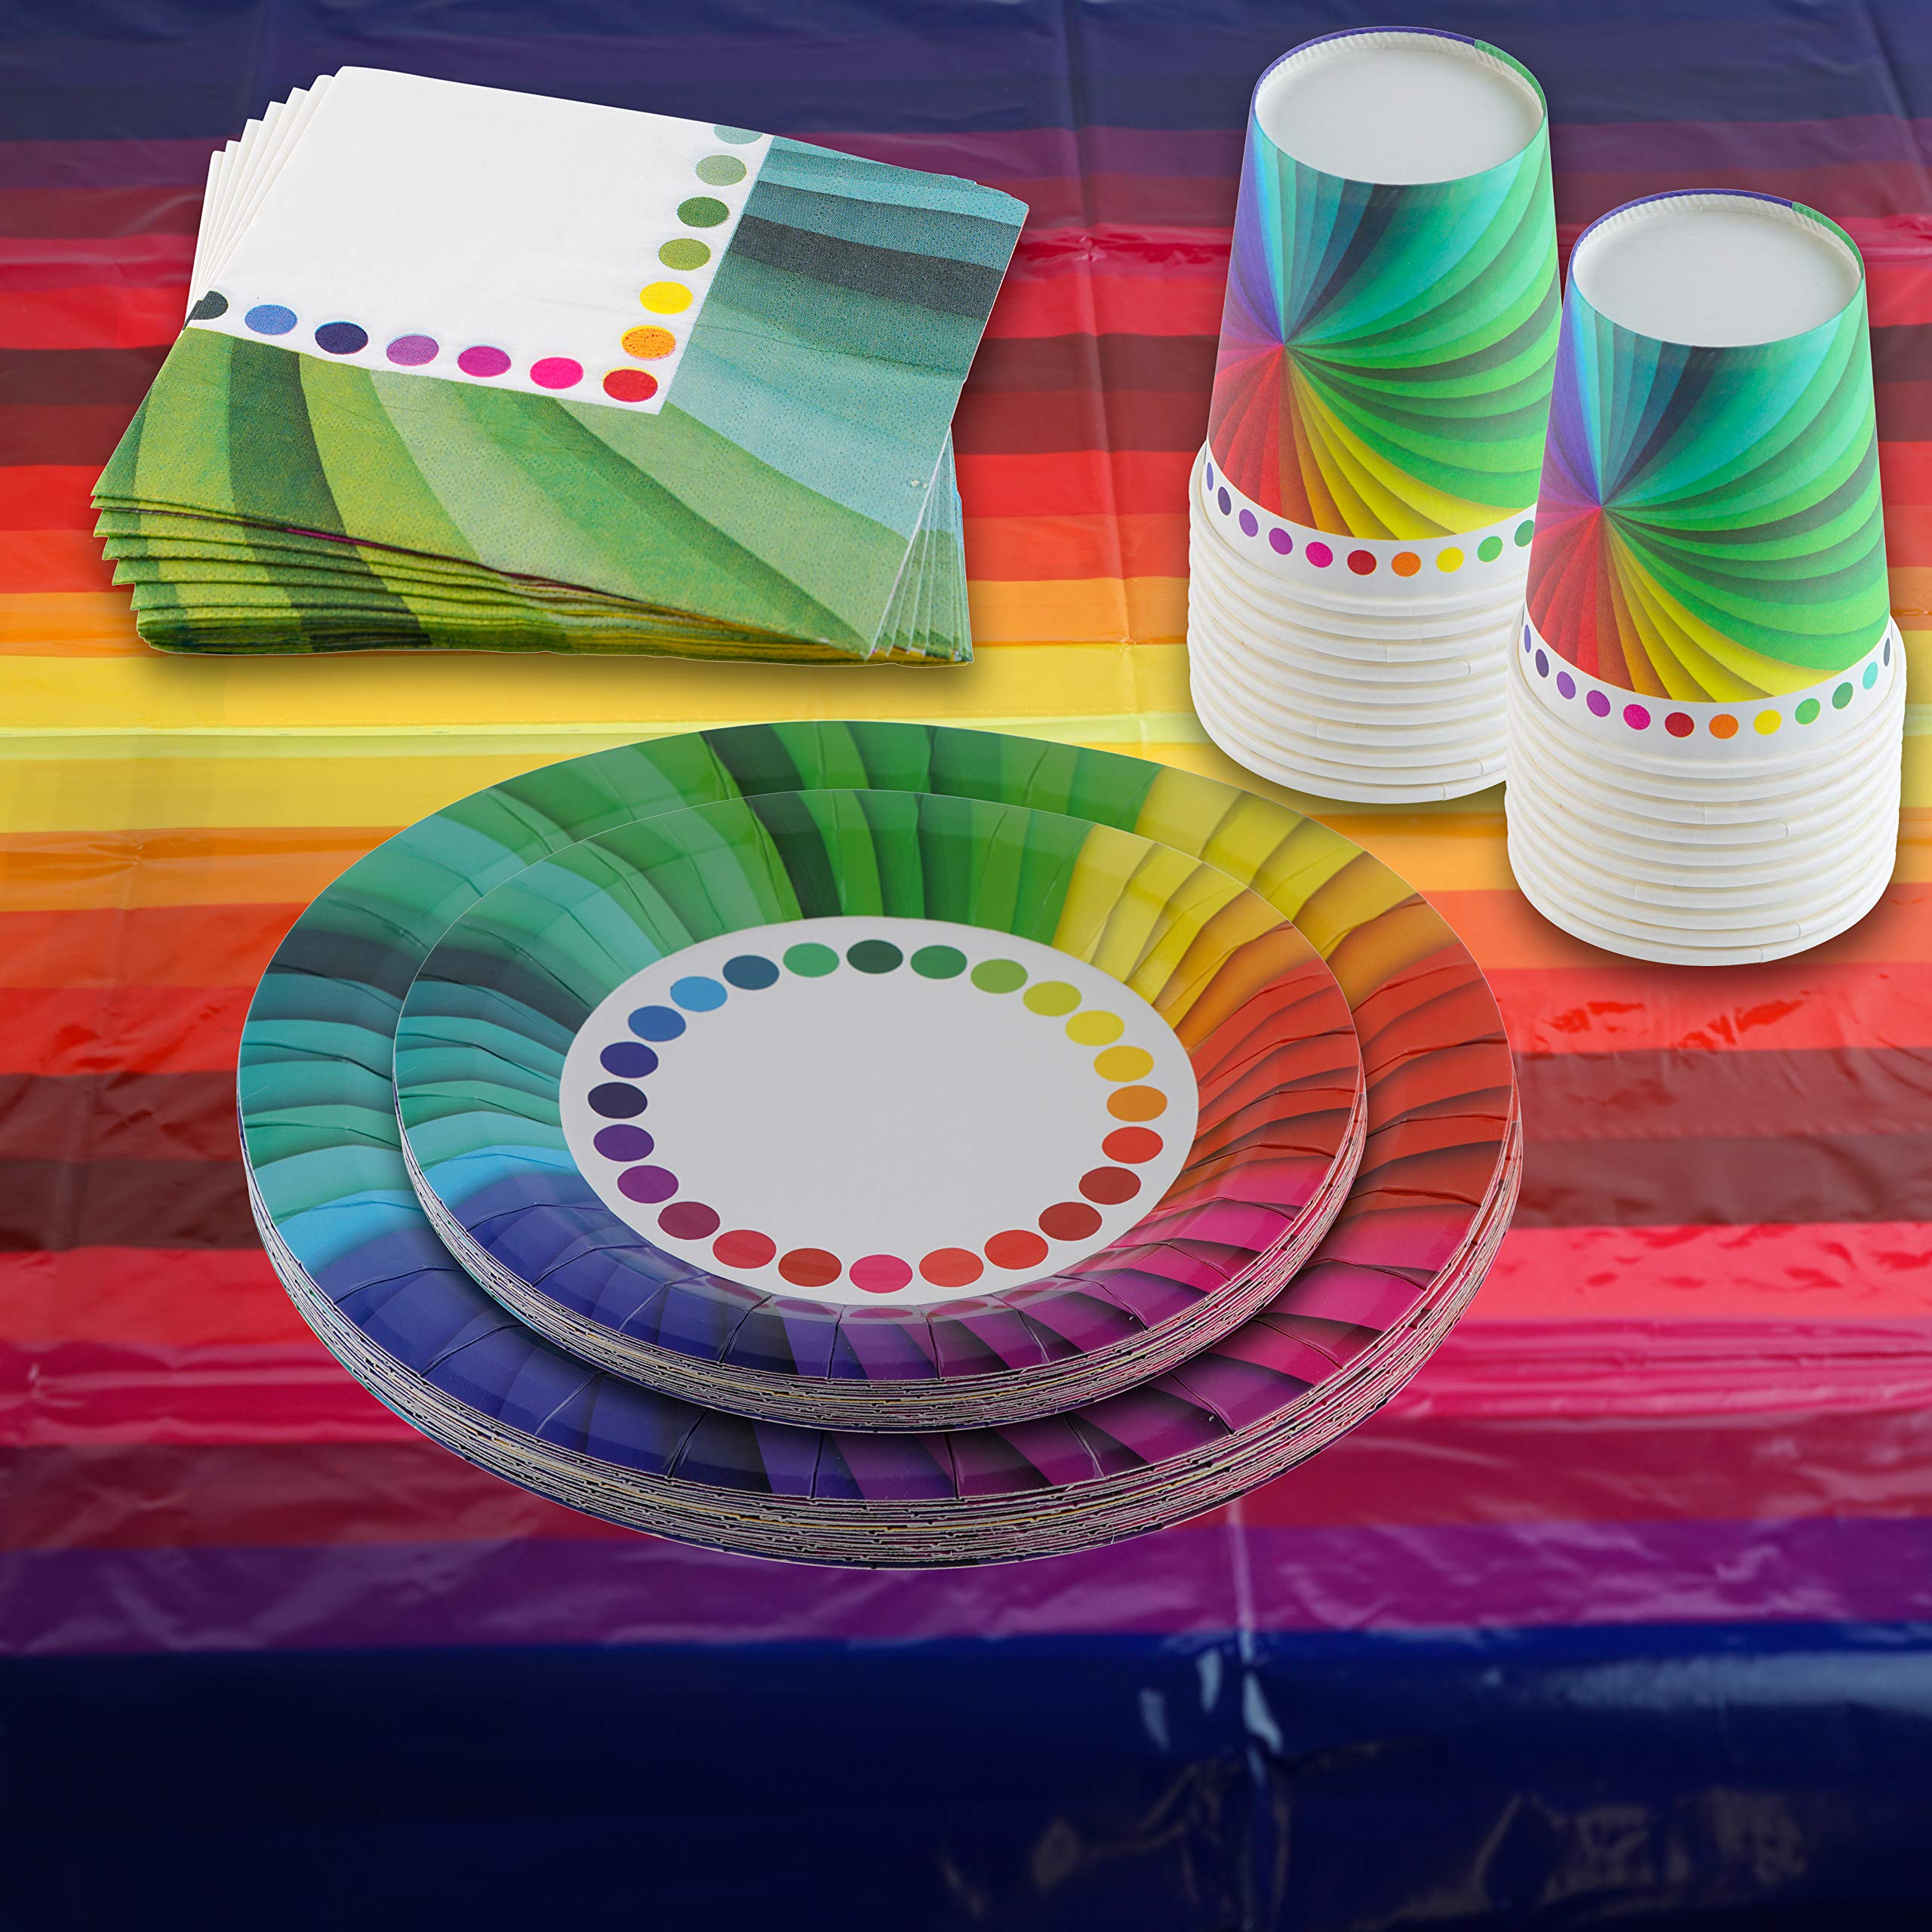 82 Piece Rainbow Party Set Including Banner, Plates, Cups, Napkins and Tablecloth, Serves 20 by Scale Rank (Image #2)